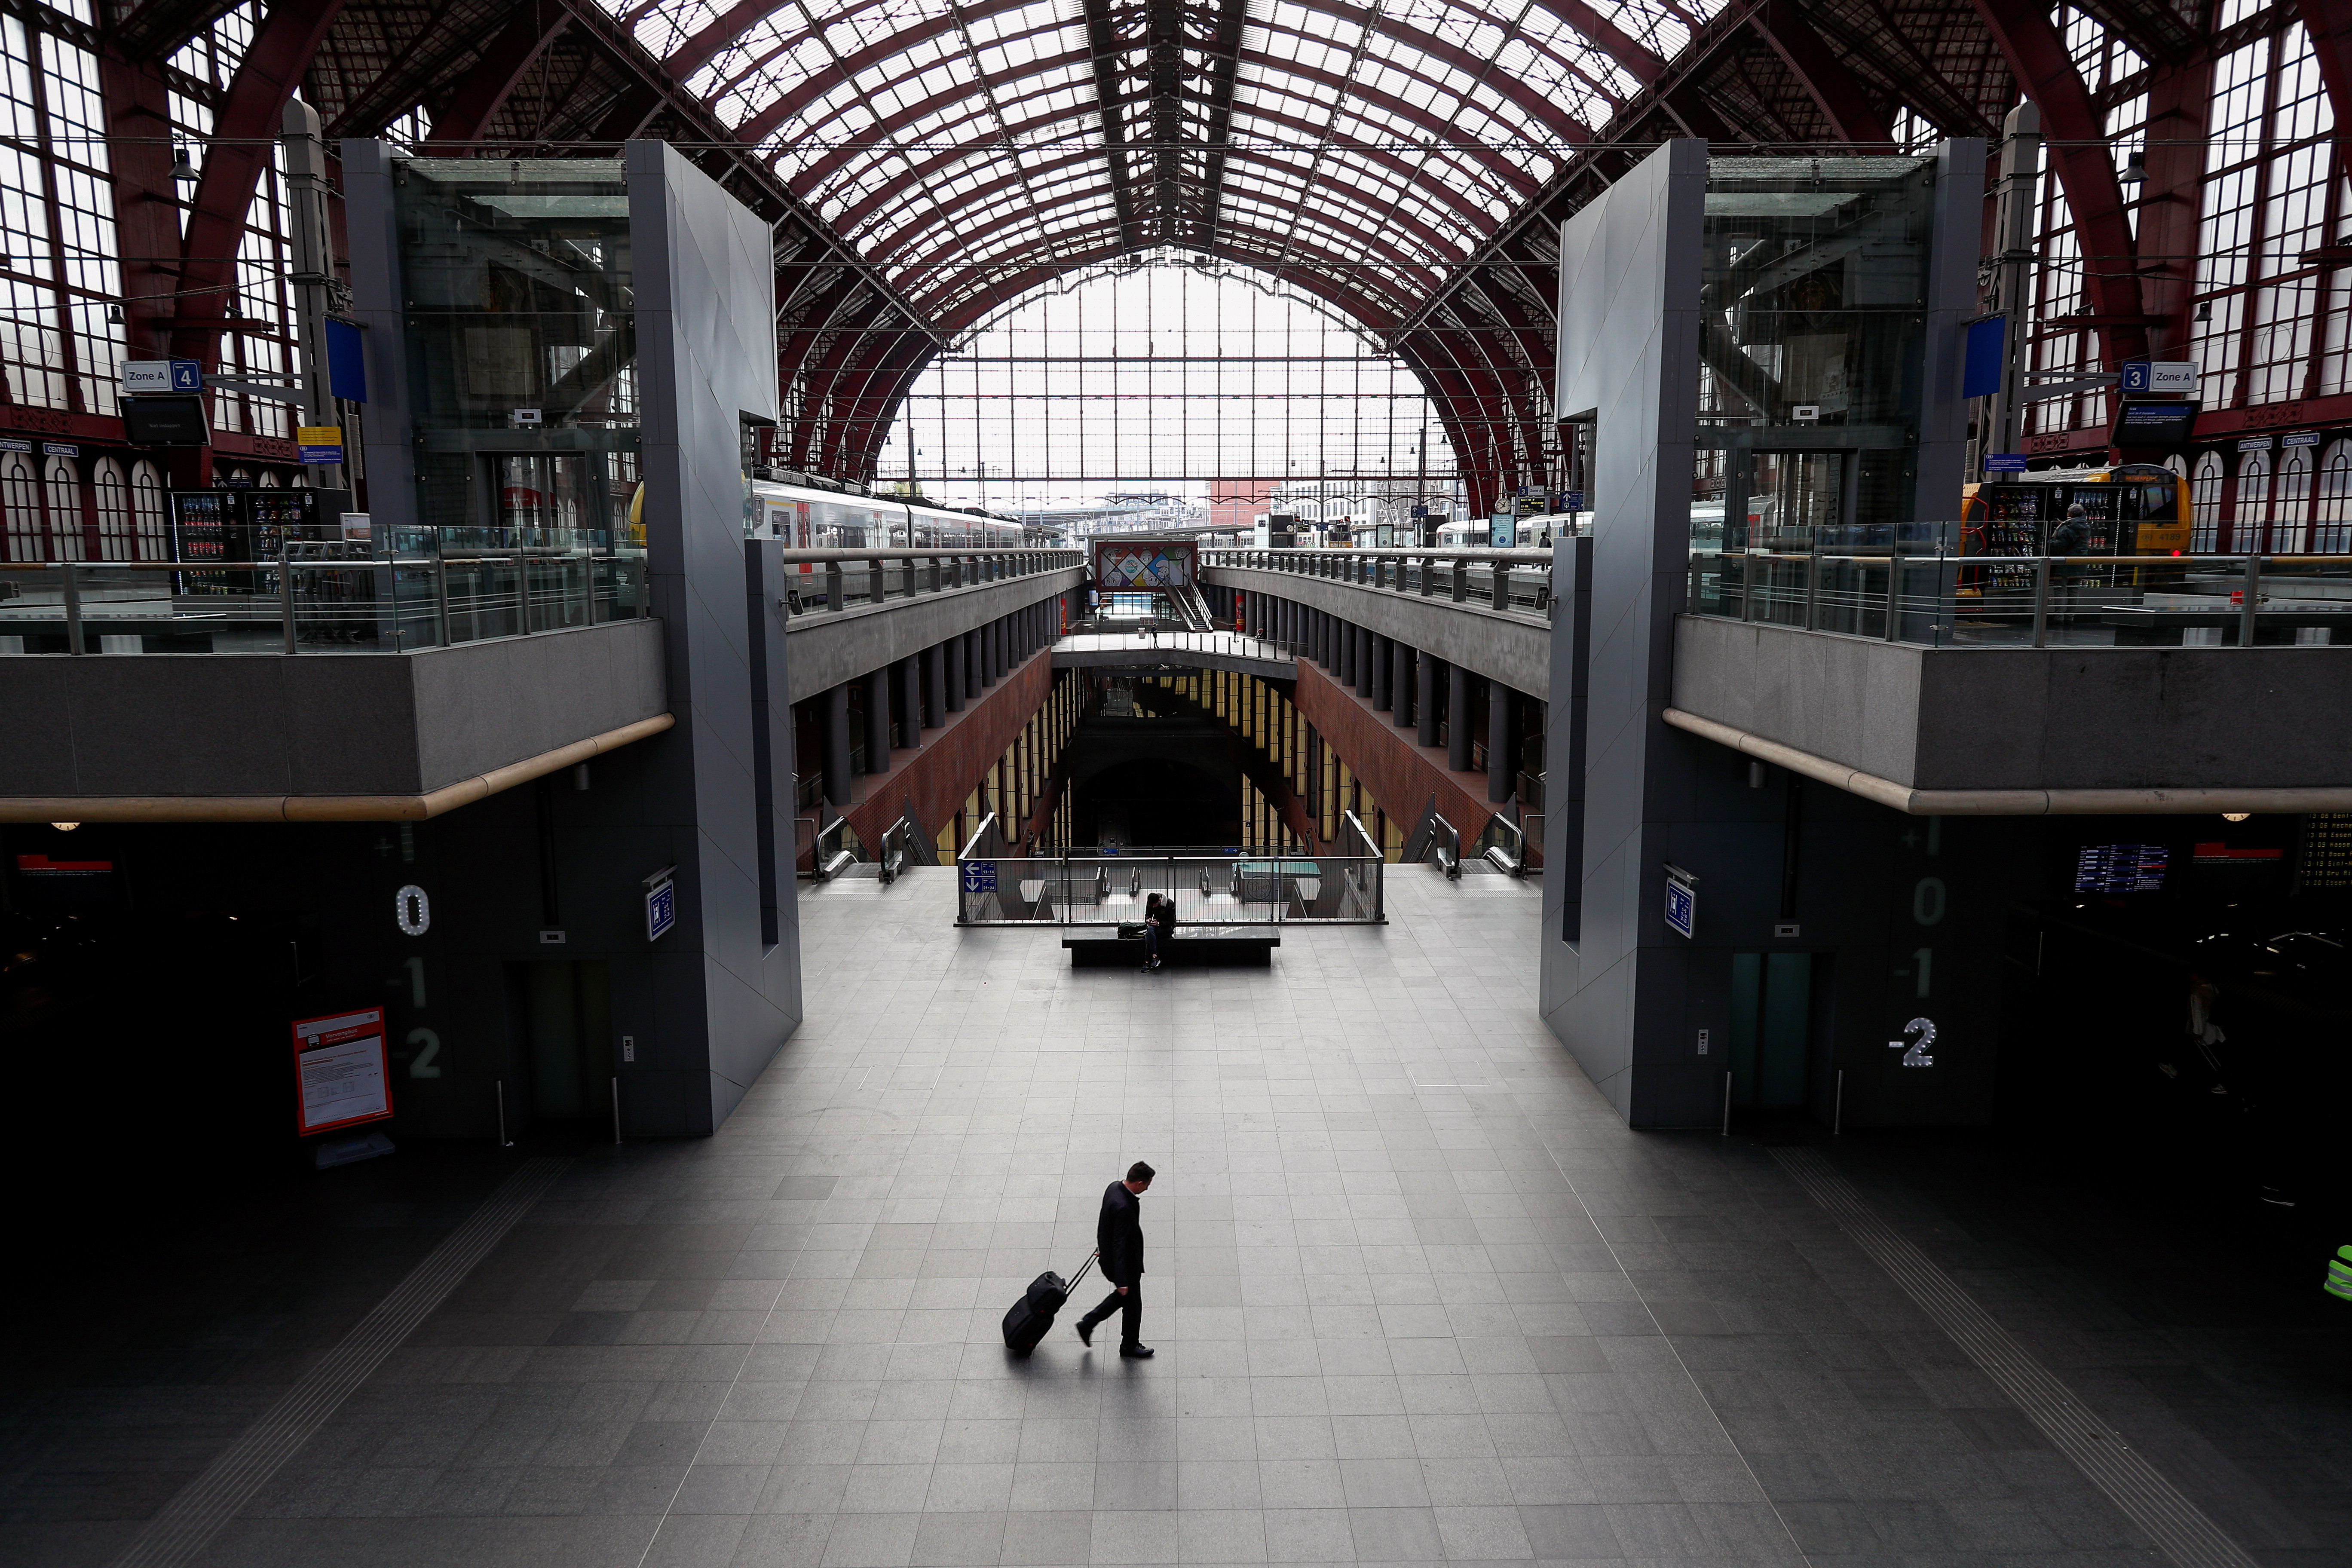 A man walks with his luggage through the almost empty railway station, after Belgium imposed a lockdown to slow down the spread of the coronavirus disease (COVID-19), in Antwerp, Belgium March 18, 2020.  REUTERS/Francois Lenoir     TPX IMAGES OF THE DAY - RC2CMF9IZEPF